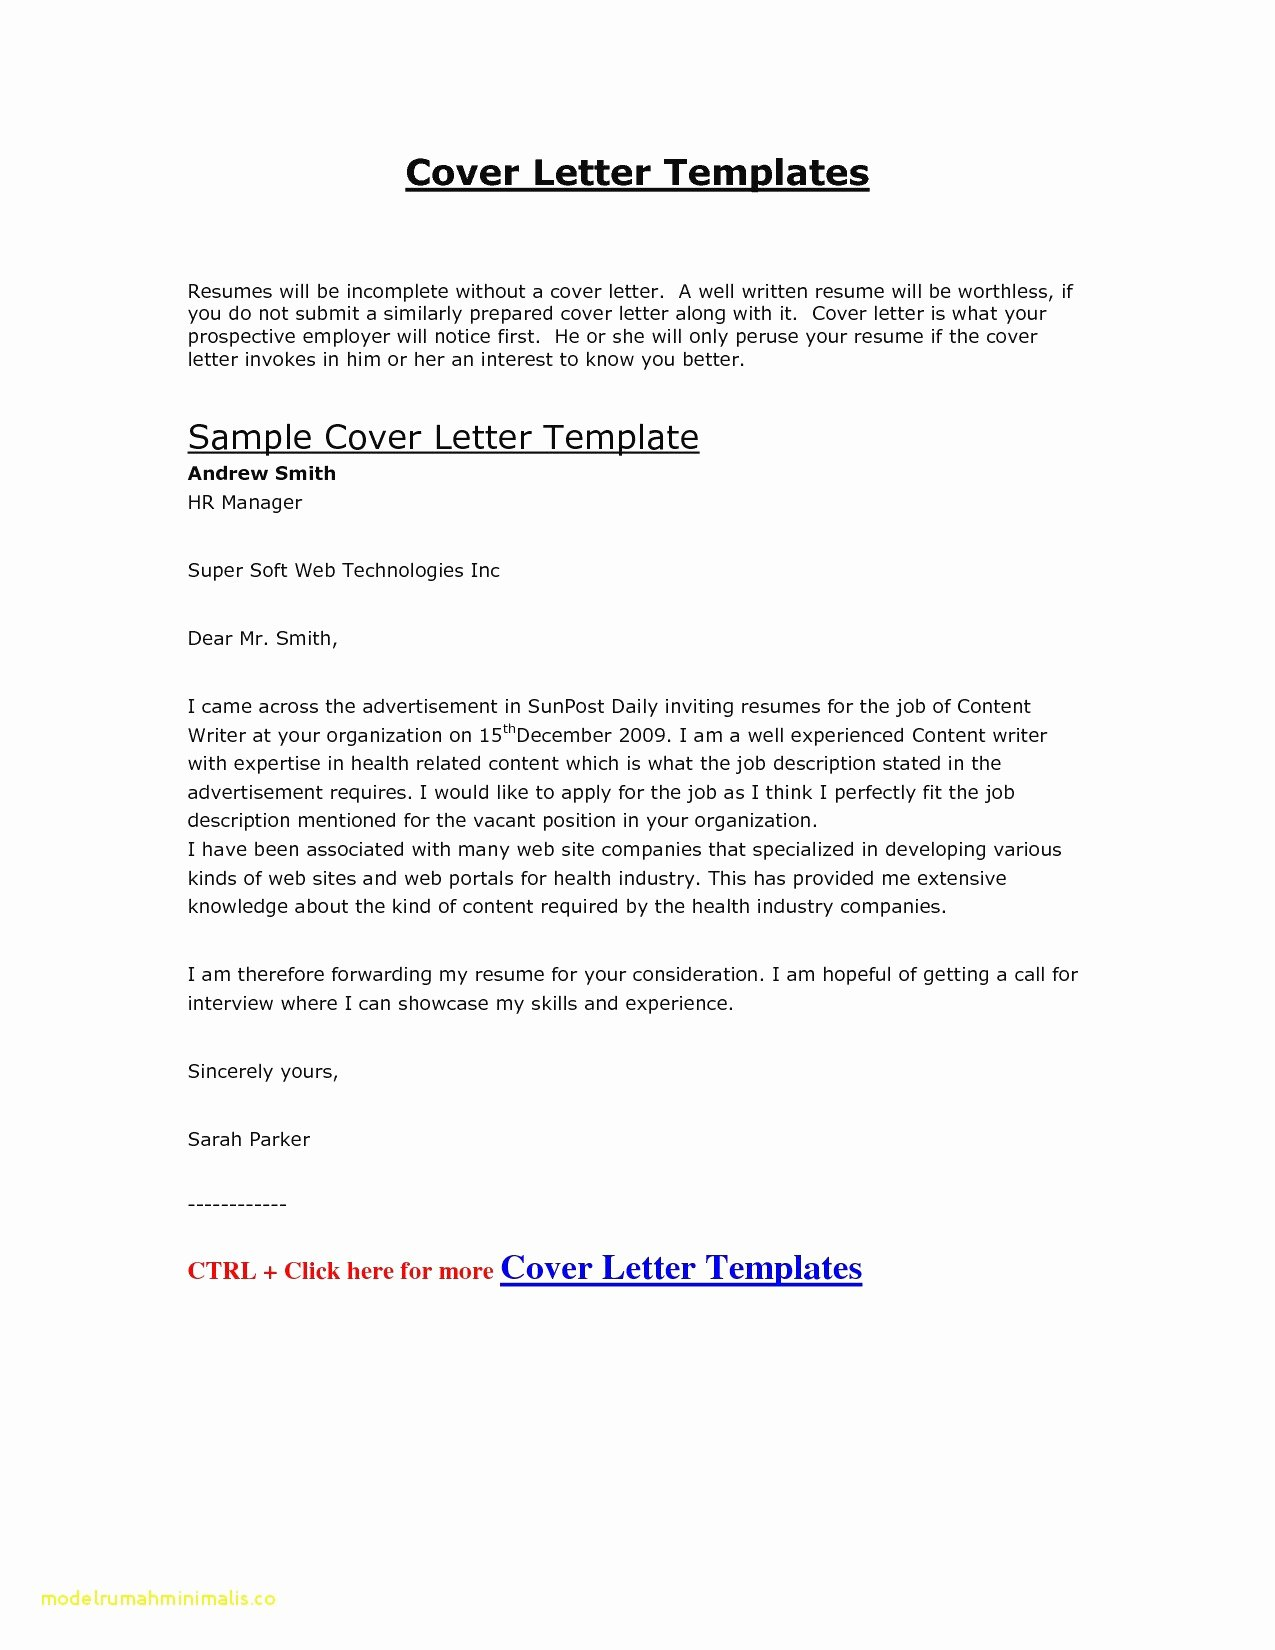 Letter Template Google Docs Beautiful Google Docs Christmas Letter Template Collection